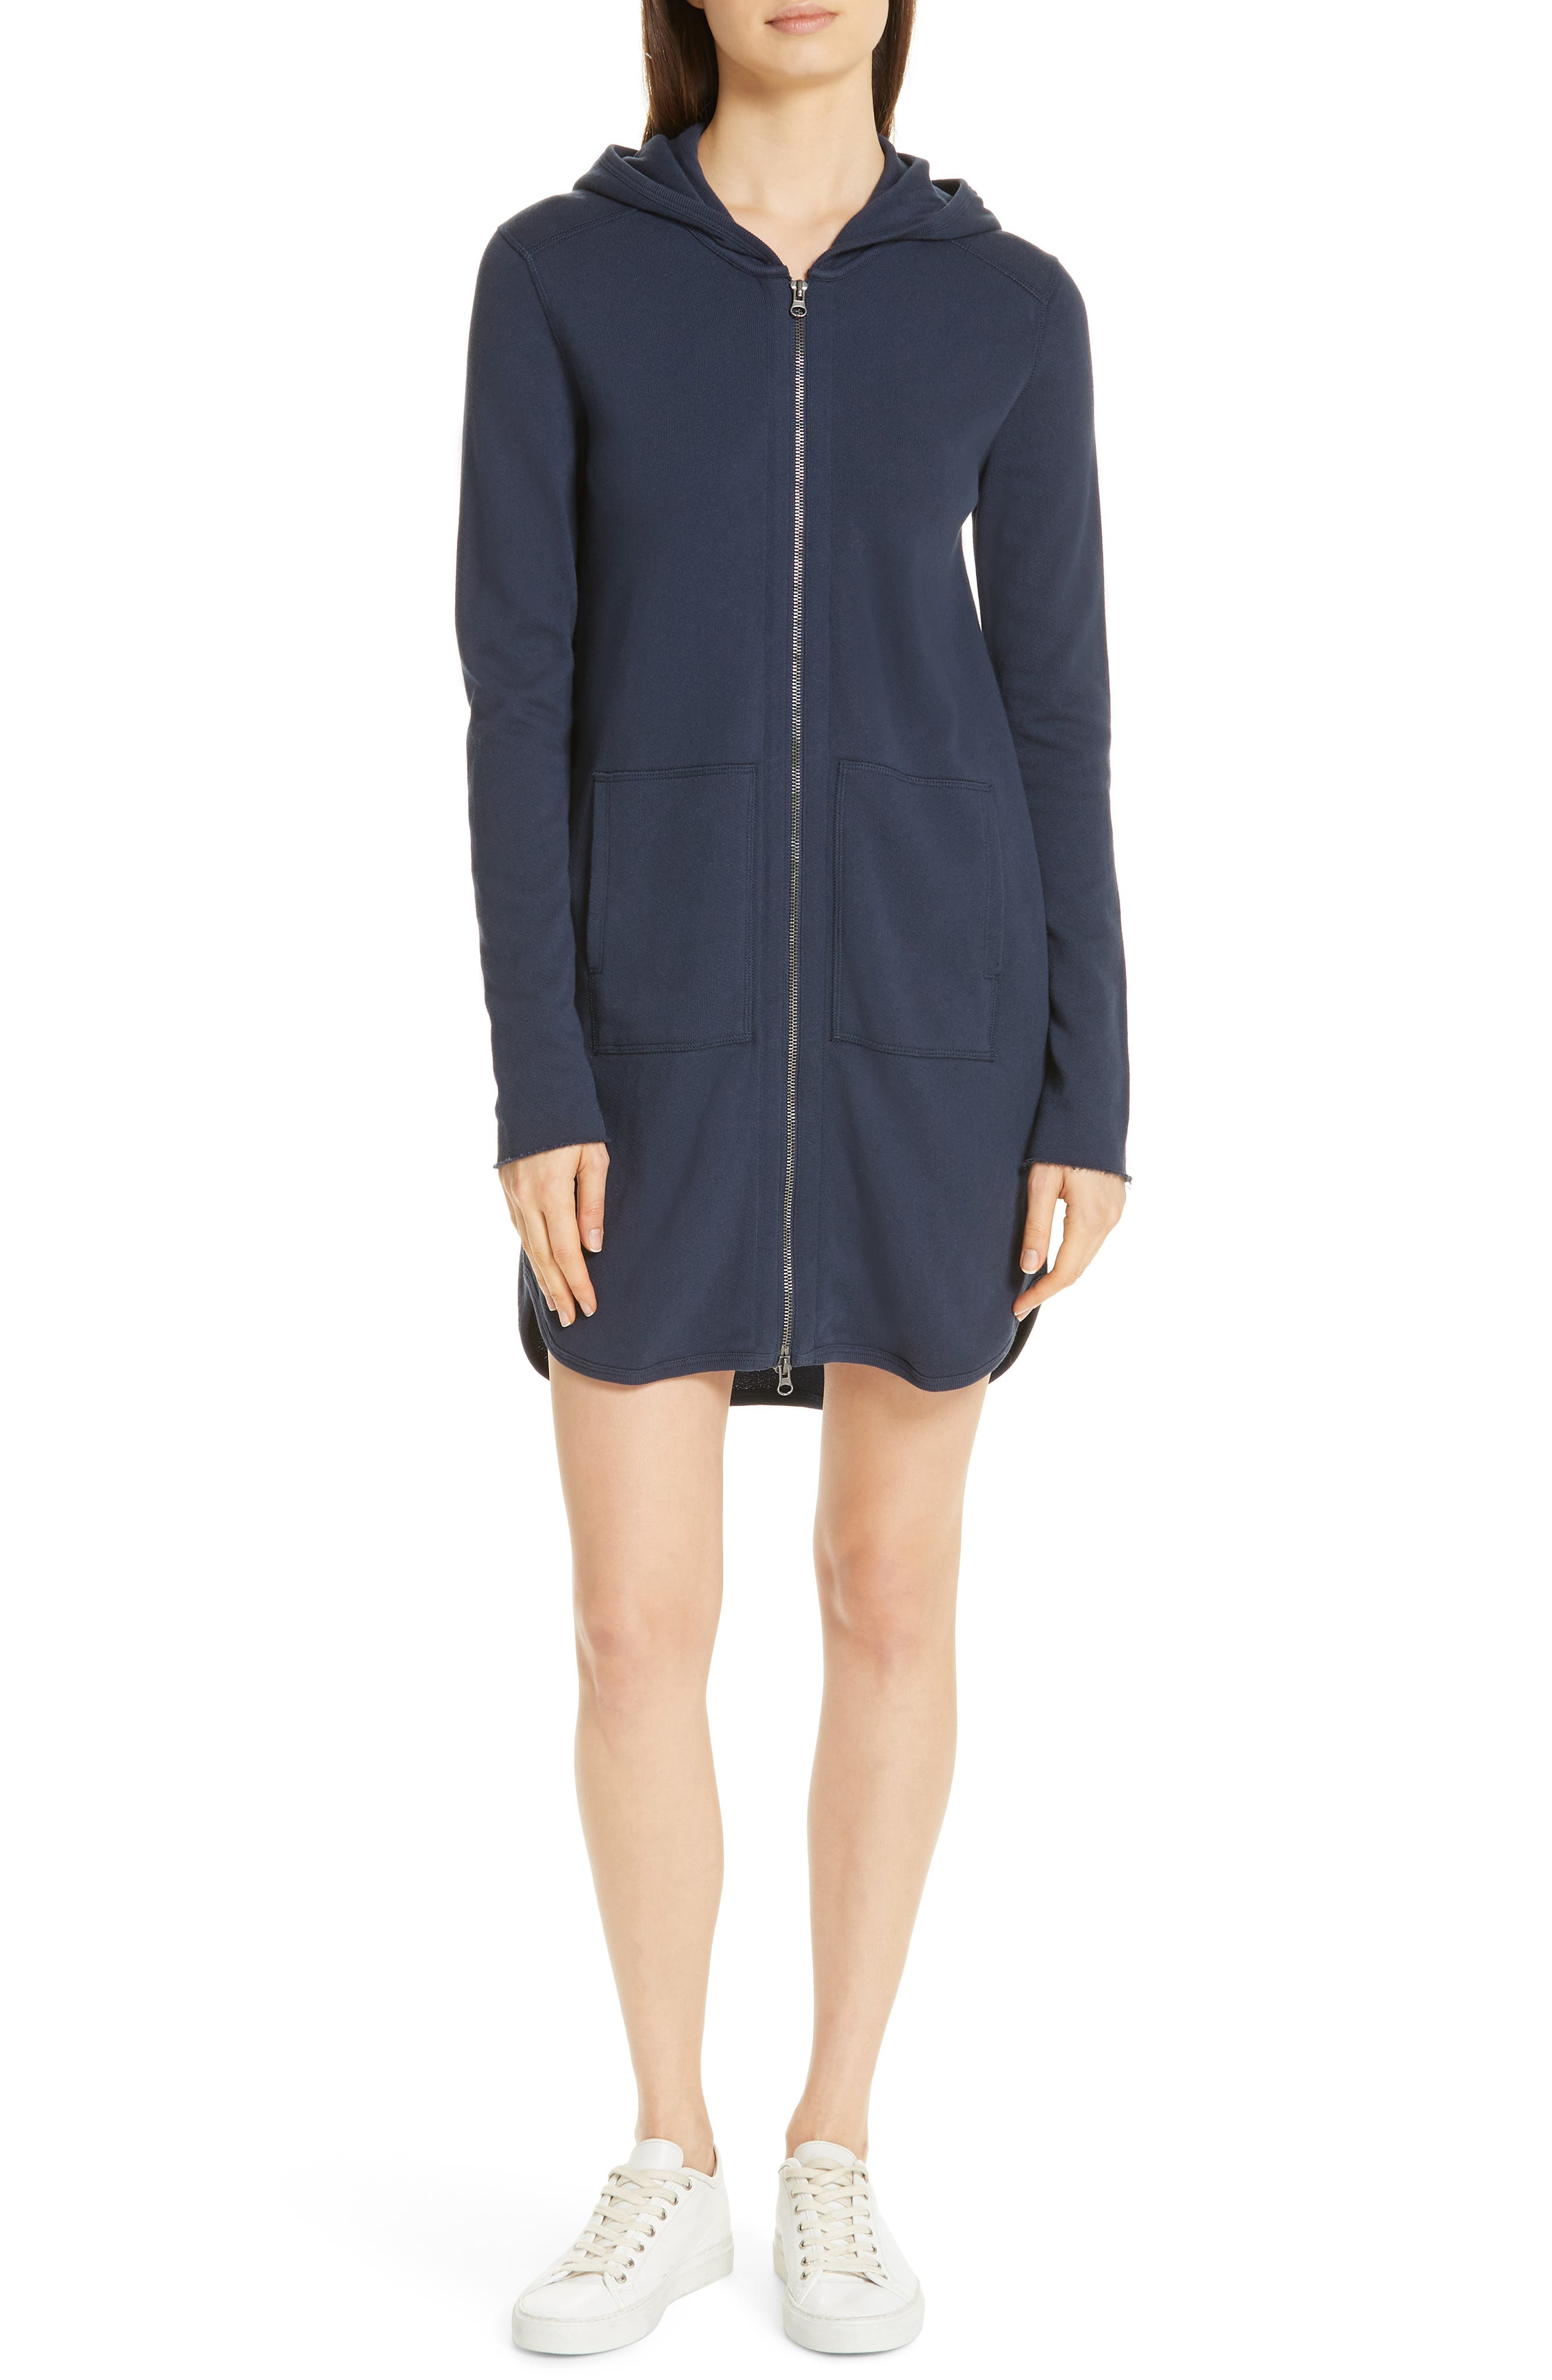 Atm Anthony Thomas Melillo Hooded French Terry Dress, Black